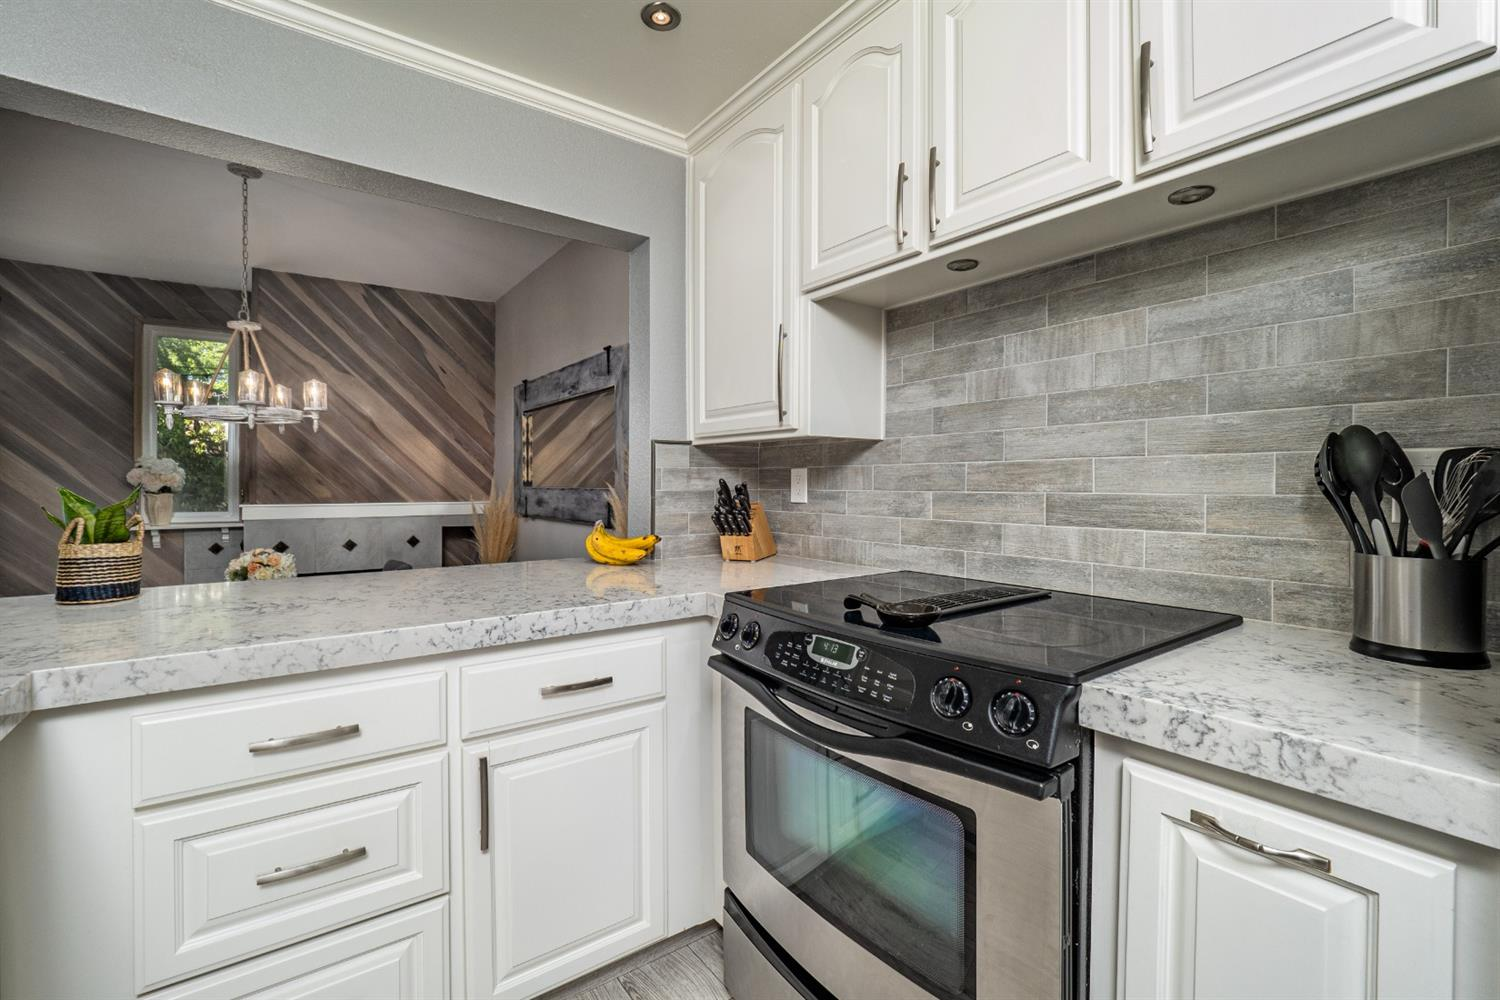 This Location-rich, modernized Brick-Tudor has finally arrived! This gem of the highly coveted Exeter Square will make you feel like a million bucks with its freshly imagined touches. Fully remodeled in the last 3 years with a new HVAC in 2017, New Roof in 2018, 6 out of 8 windows replaced to dual-pane with fiberglass frames. White Carrara Marble bathroom counters, Quartz kitchen and wet bar counters, all new water fixtures in 2018-2019, oversized bathtub, all new 12mm laminate floors to withstand the weight of the beautiful grand piano in the open concept living room. Need a refrigerator, washer & Dryer? These Fall of 2016 models are included with an accepted offer! Enjoy the natural sunlight as the 5 skylights rain sunshine through to the